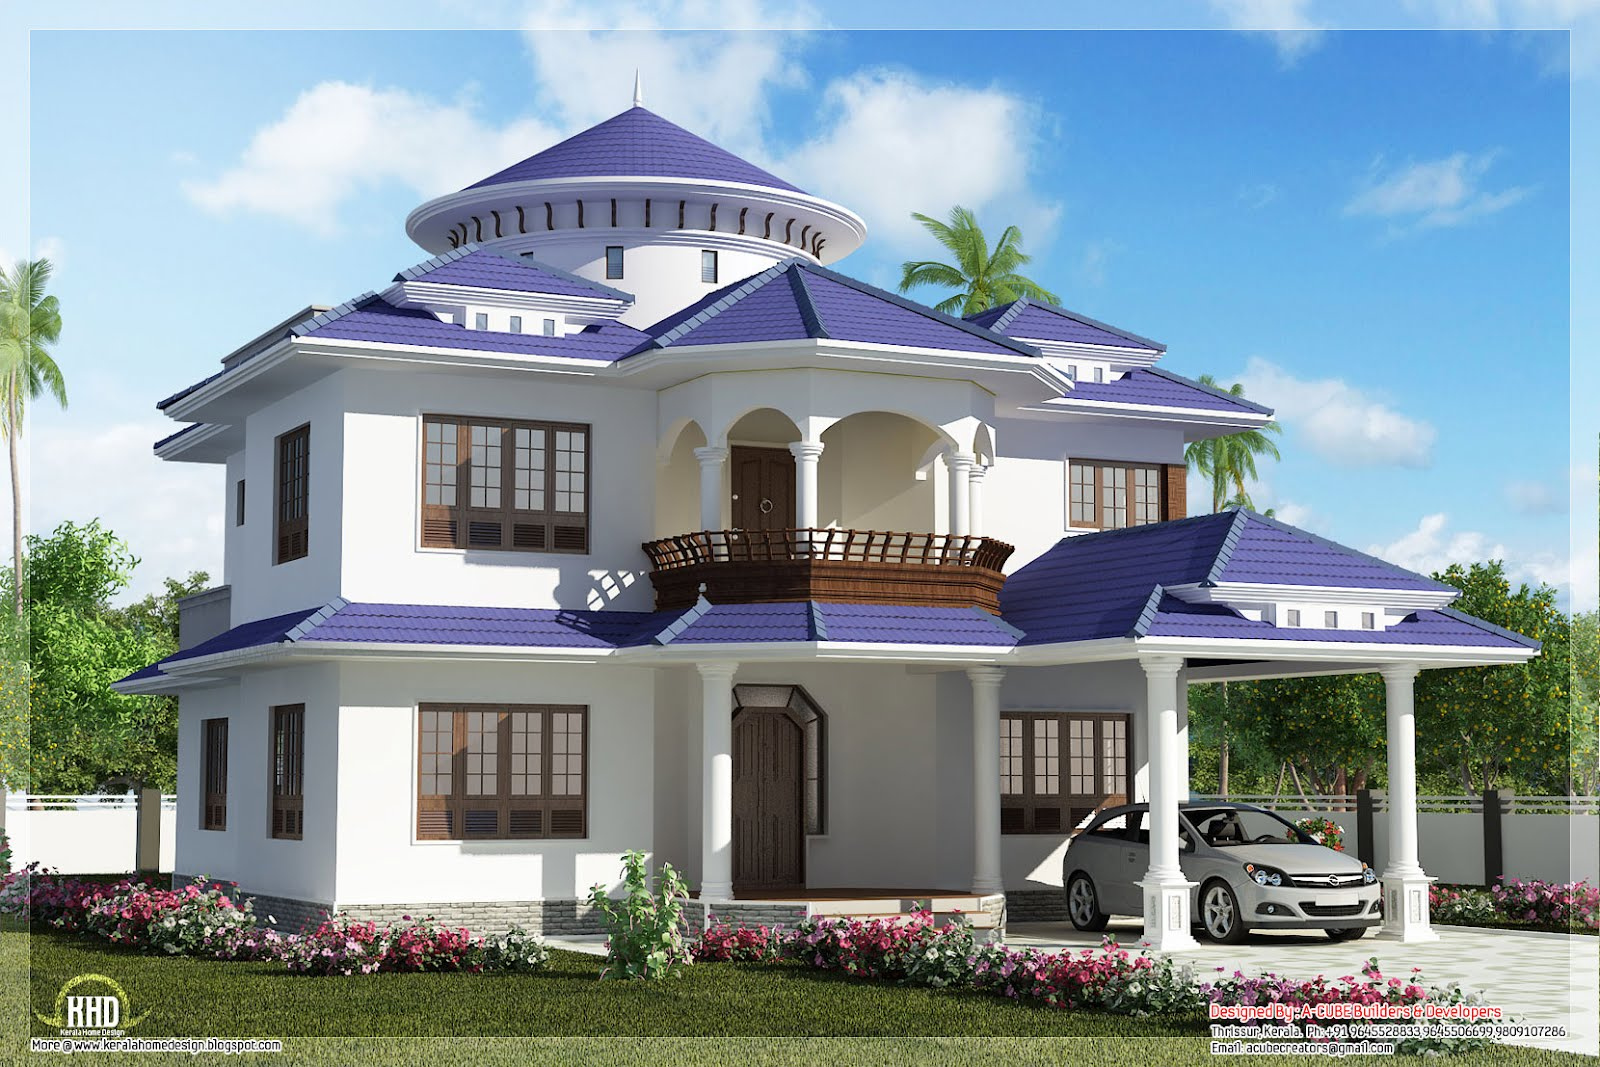 Amazing Dreamhouse Design 1600 x 1067 · 320 kB · jpeg